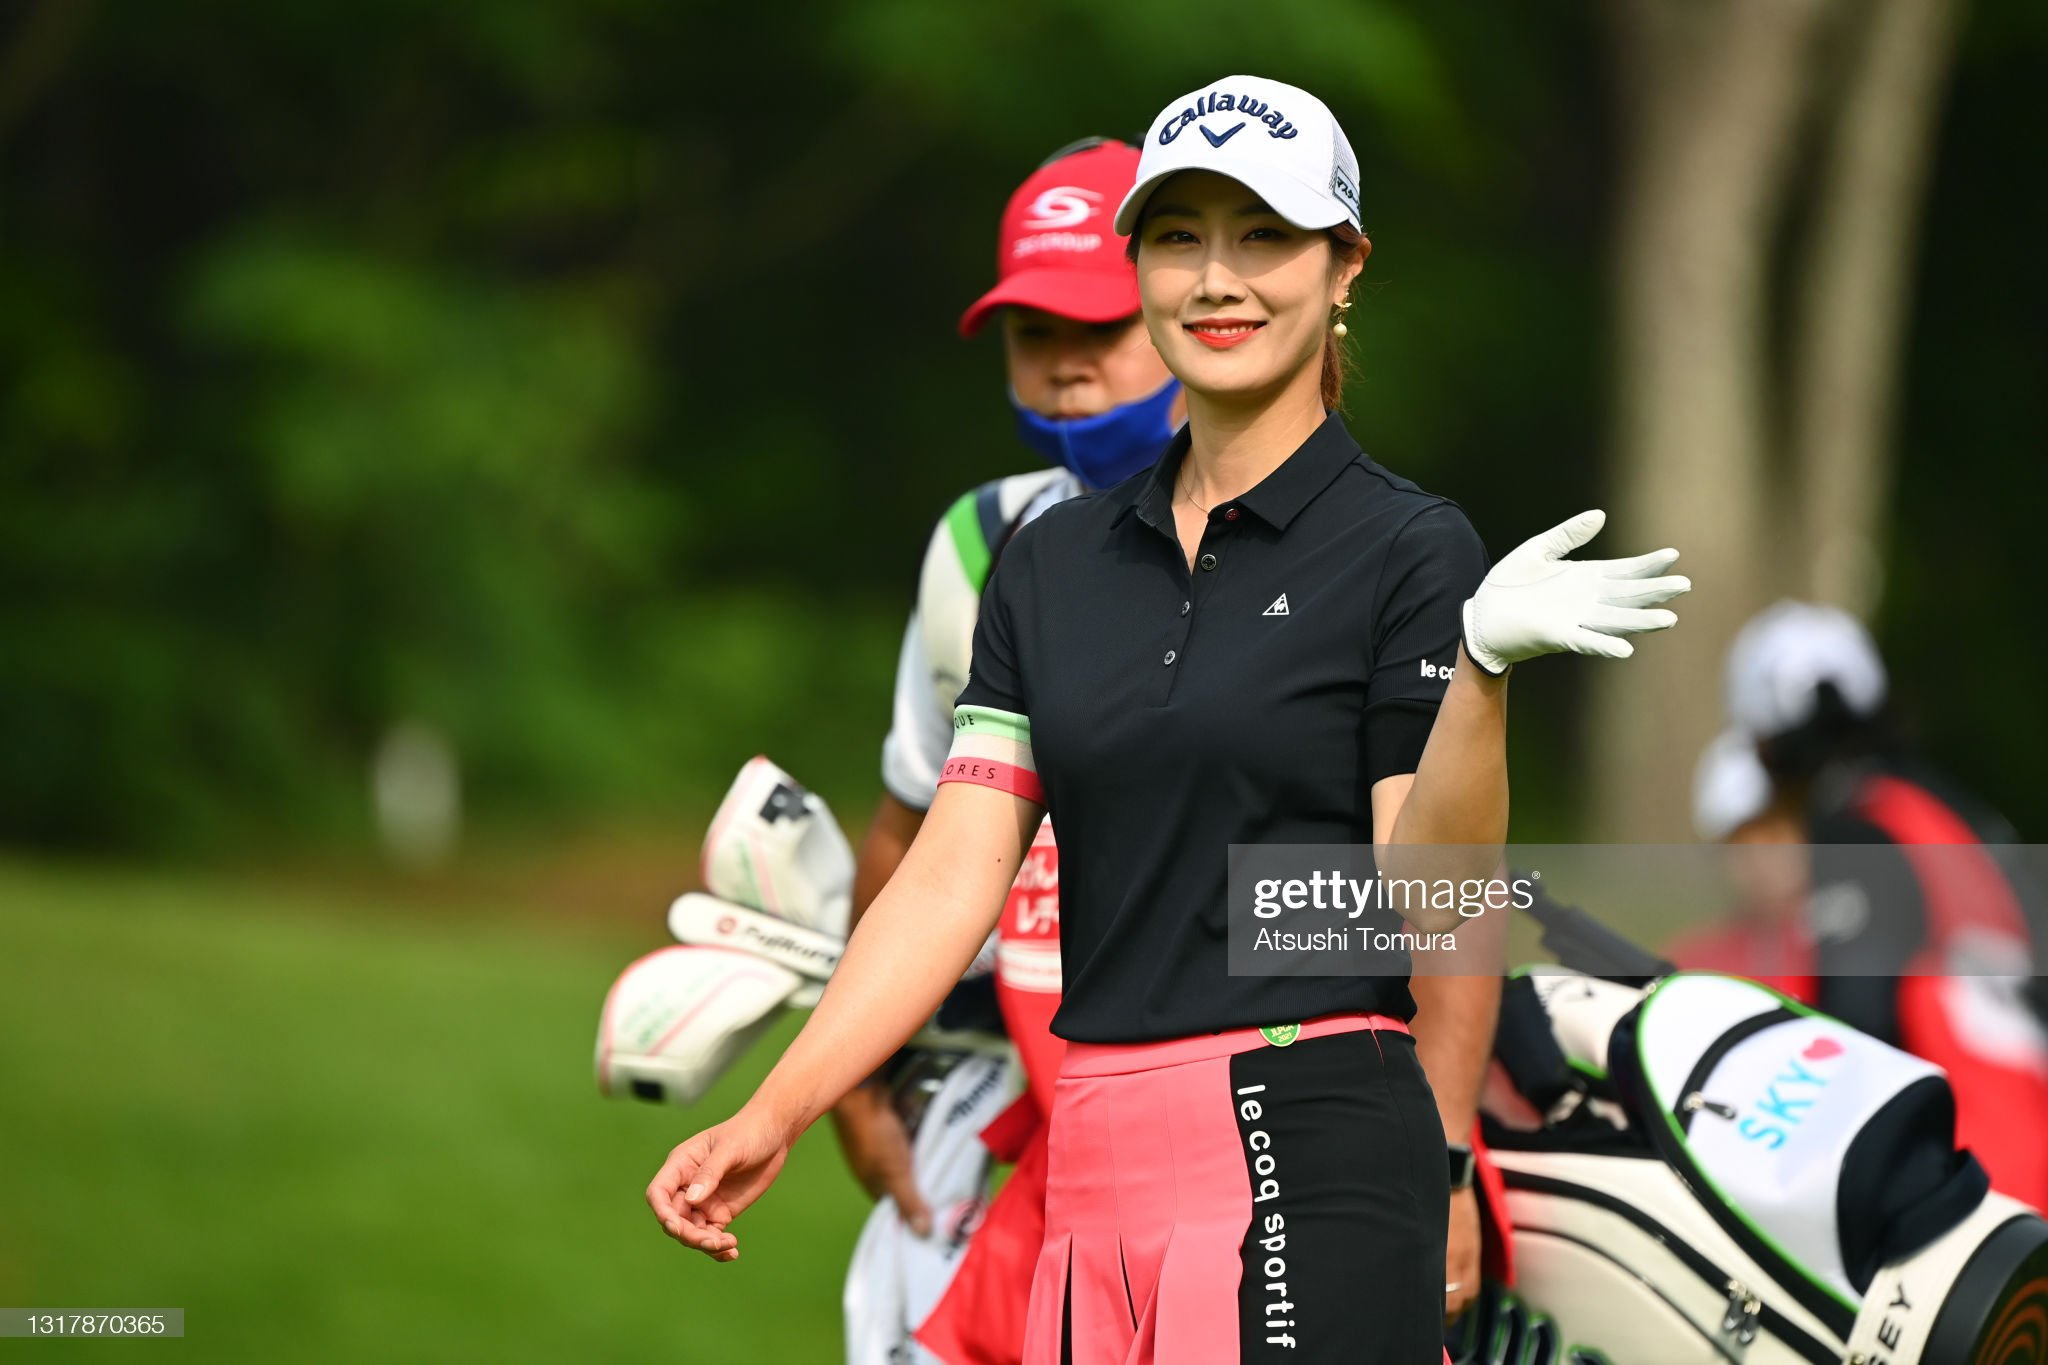 https://media.gettyimages.com/photos/haneul-kim-of-south-korea-waves-on-the-1st-hole-during-the-first-of-picture-id1317870365?s=2048x2048